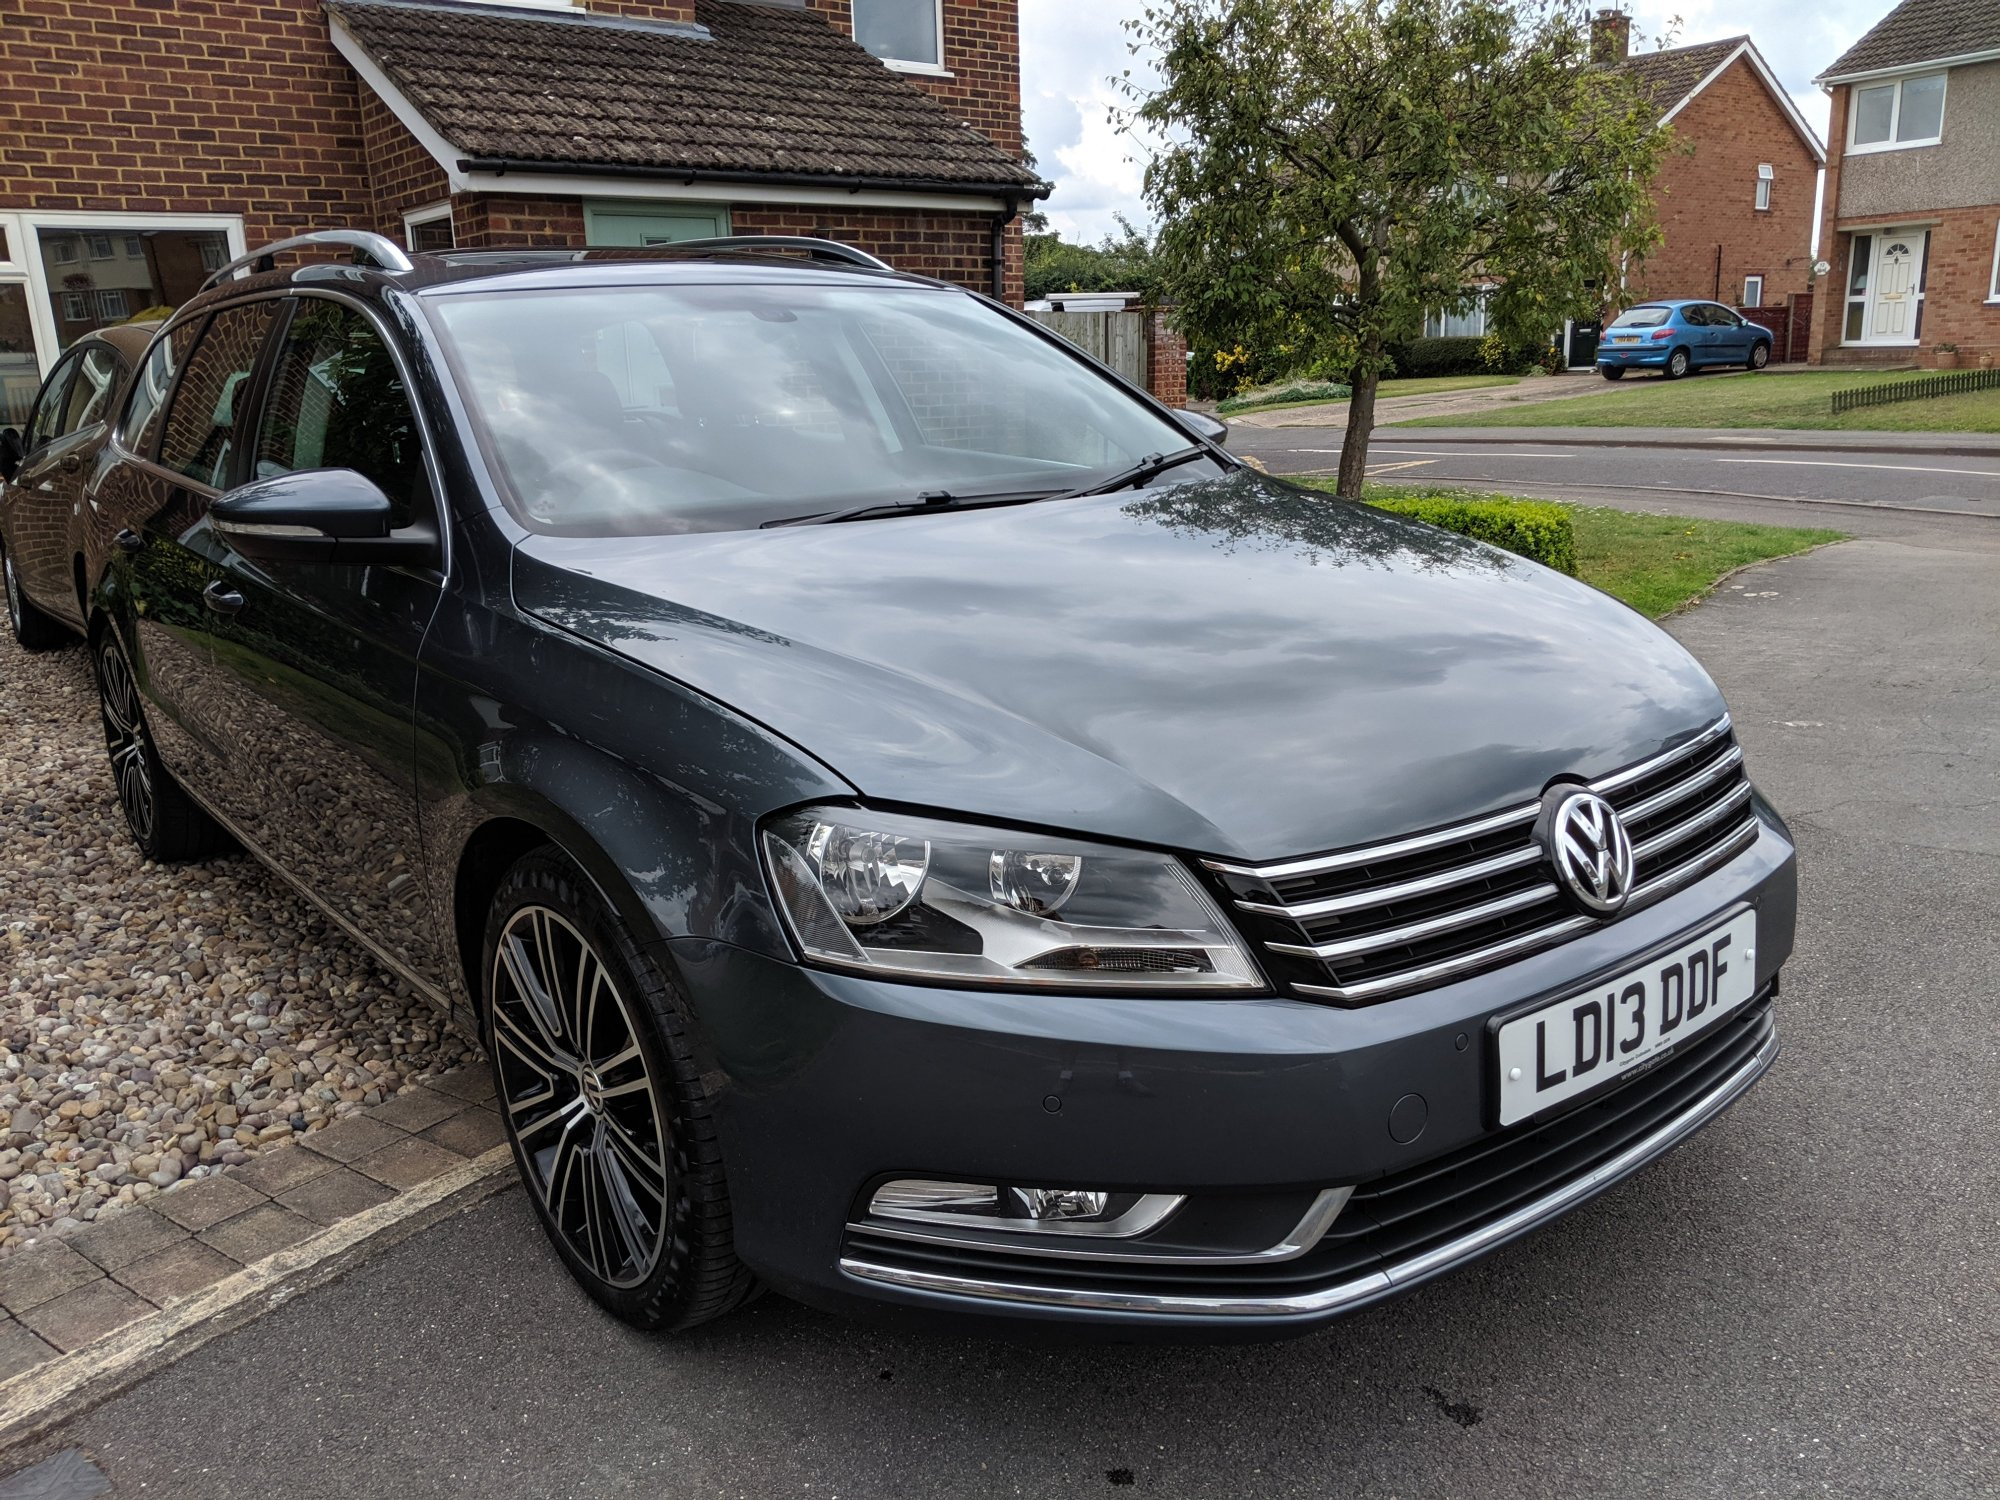 Thames Valley Cars | Used Cars | Berkshire